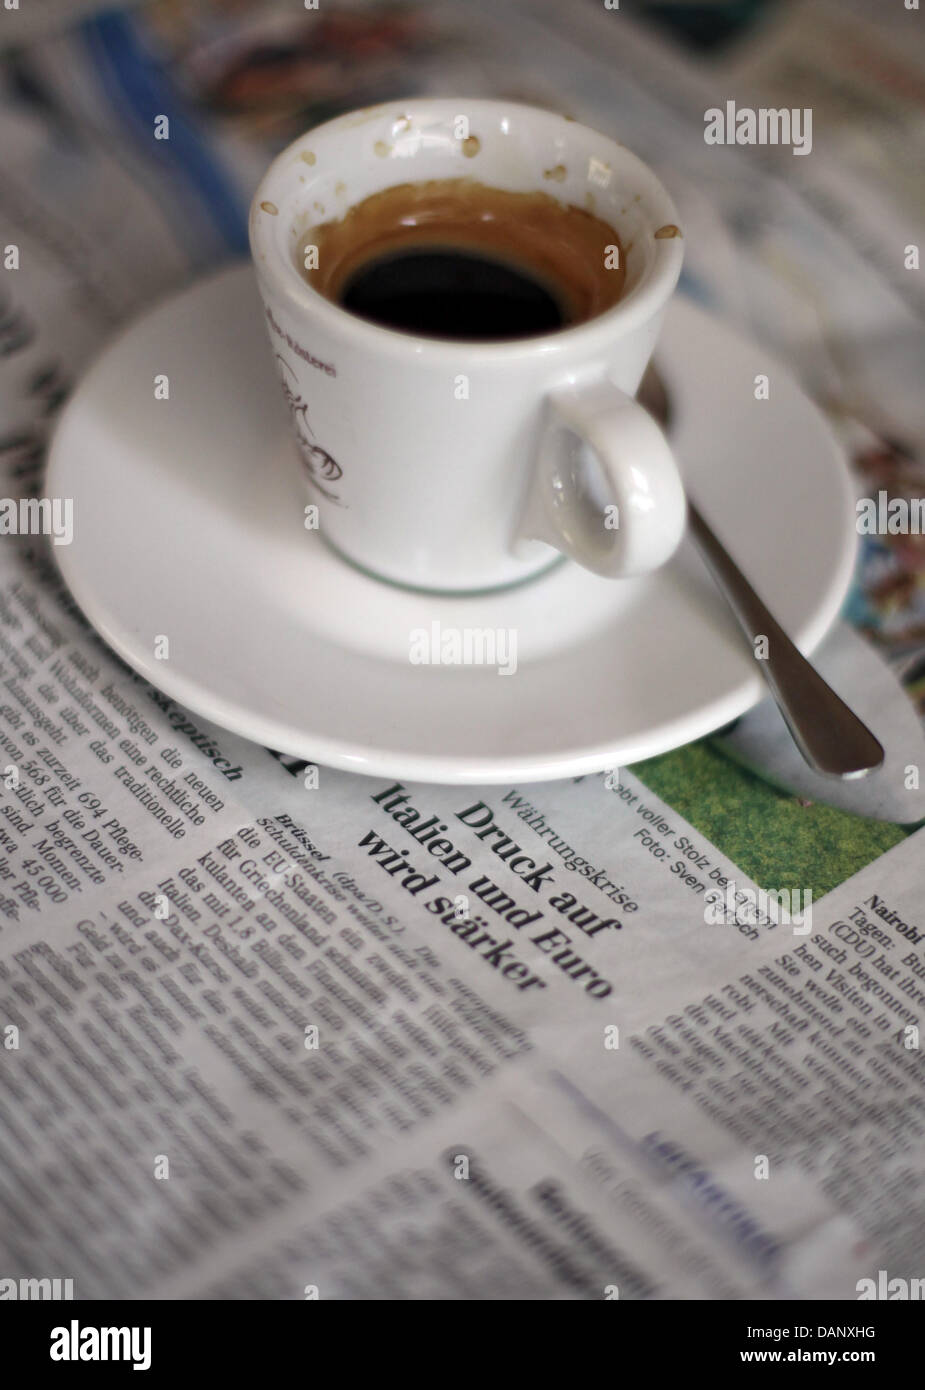 (ILLUSTRATION)An illustration dated 13 July 2011 shows an espresso cup on top of the economic advice section - Stock Image